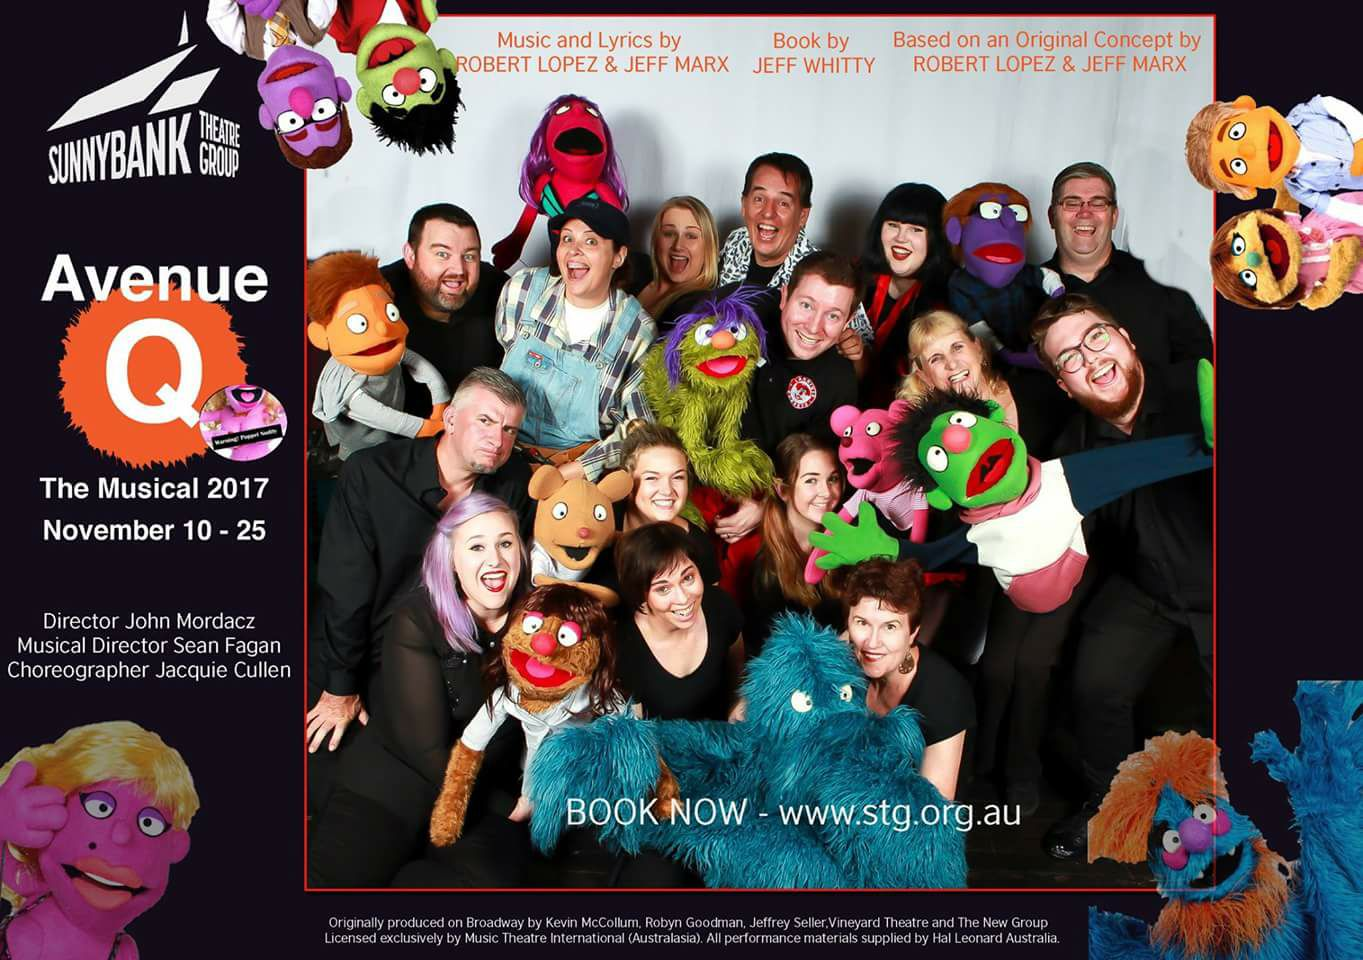 Corporate Entertainment, Corporate Team Building Activities, Party Entertainment For Hire | Puppet Show, Adult Puppetry Workshops - Puppeteer Workshop, Avenue Q, Theatre